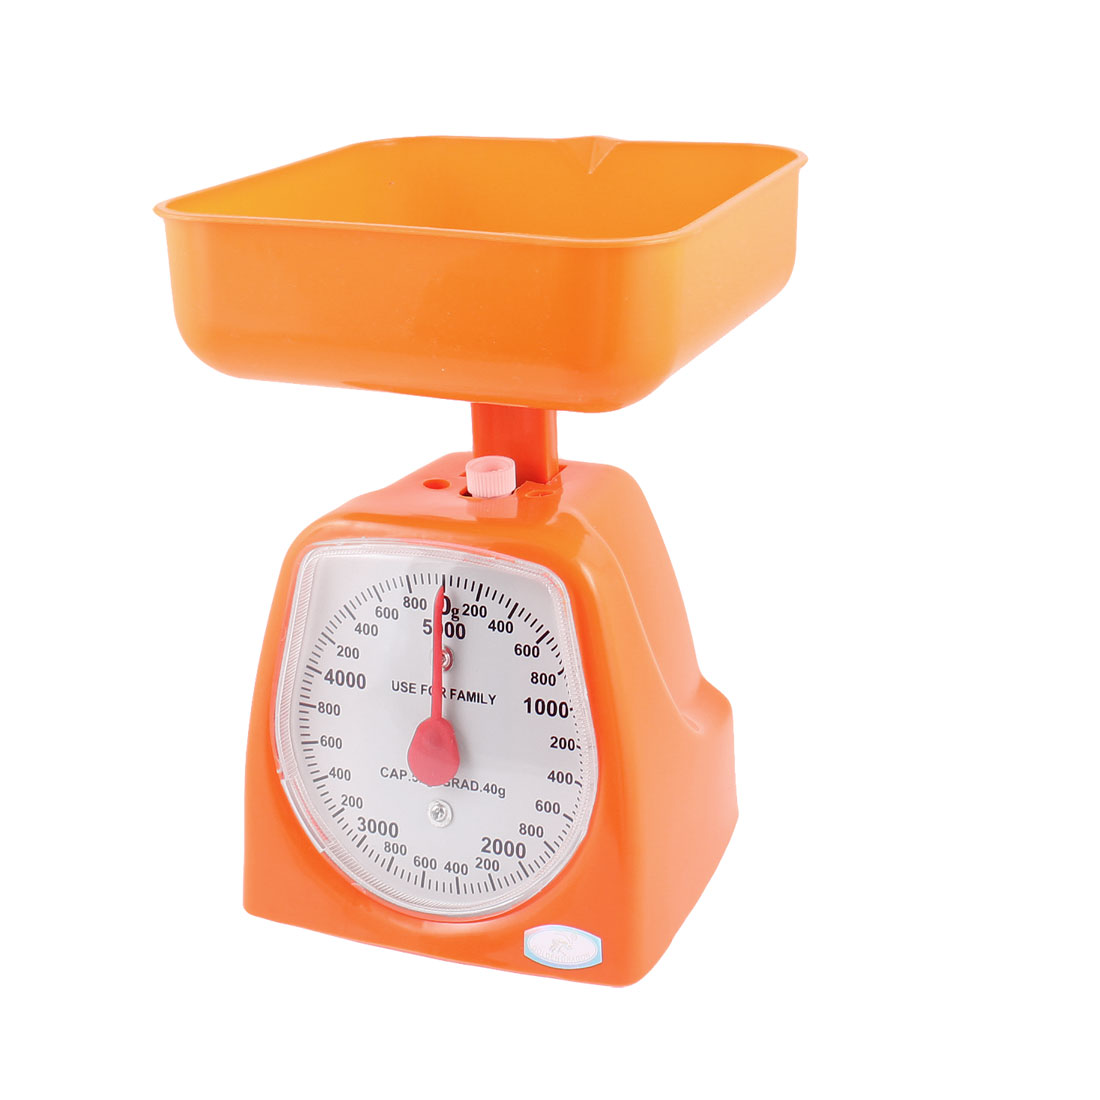 Home Orange Plastic Housing Mechanical Weighing Scale 0-5KG w Squared Tray